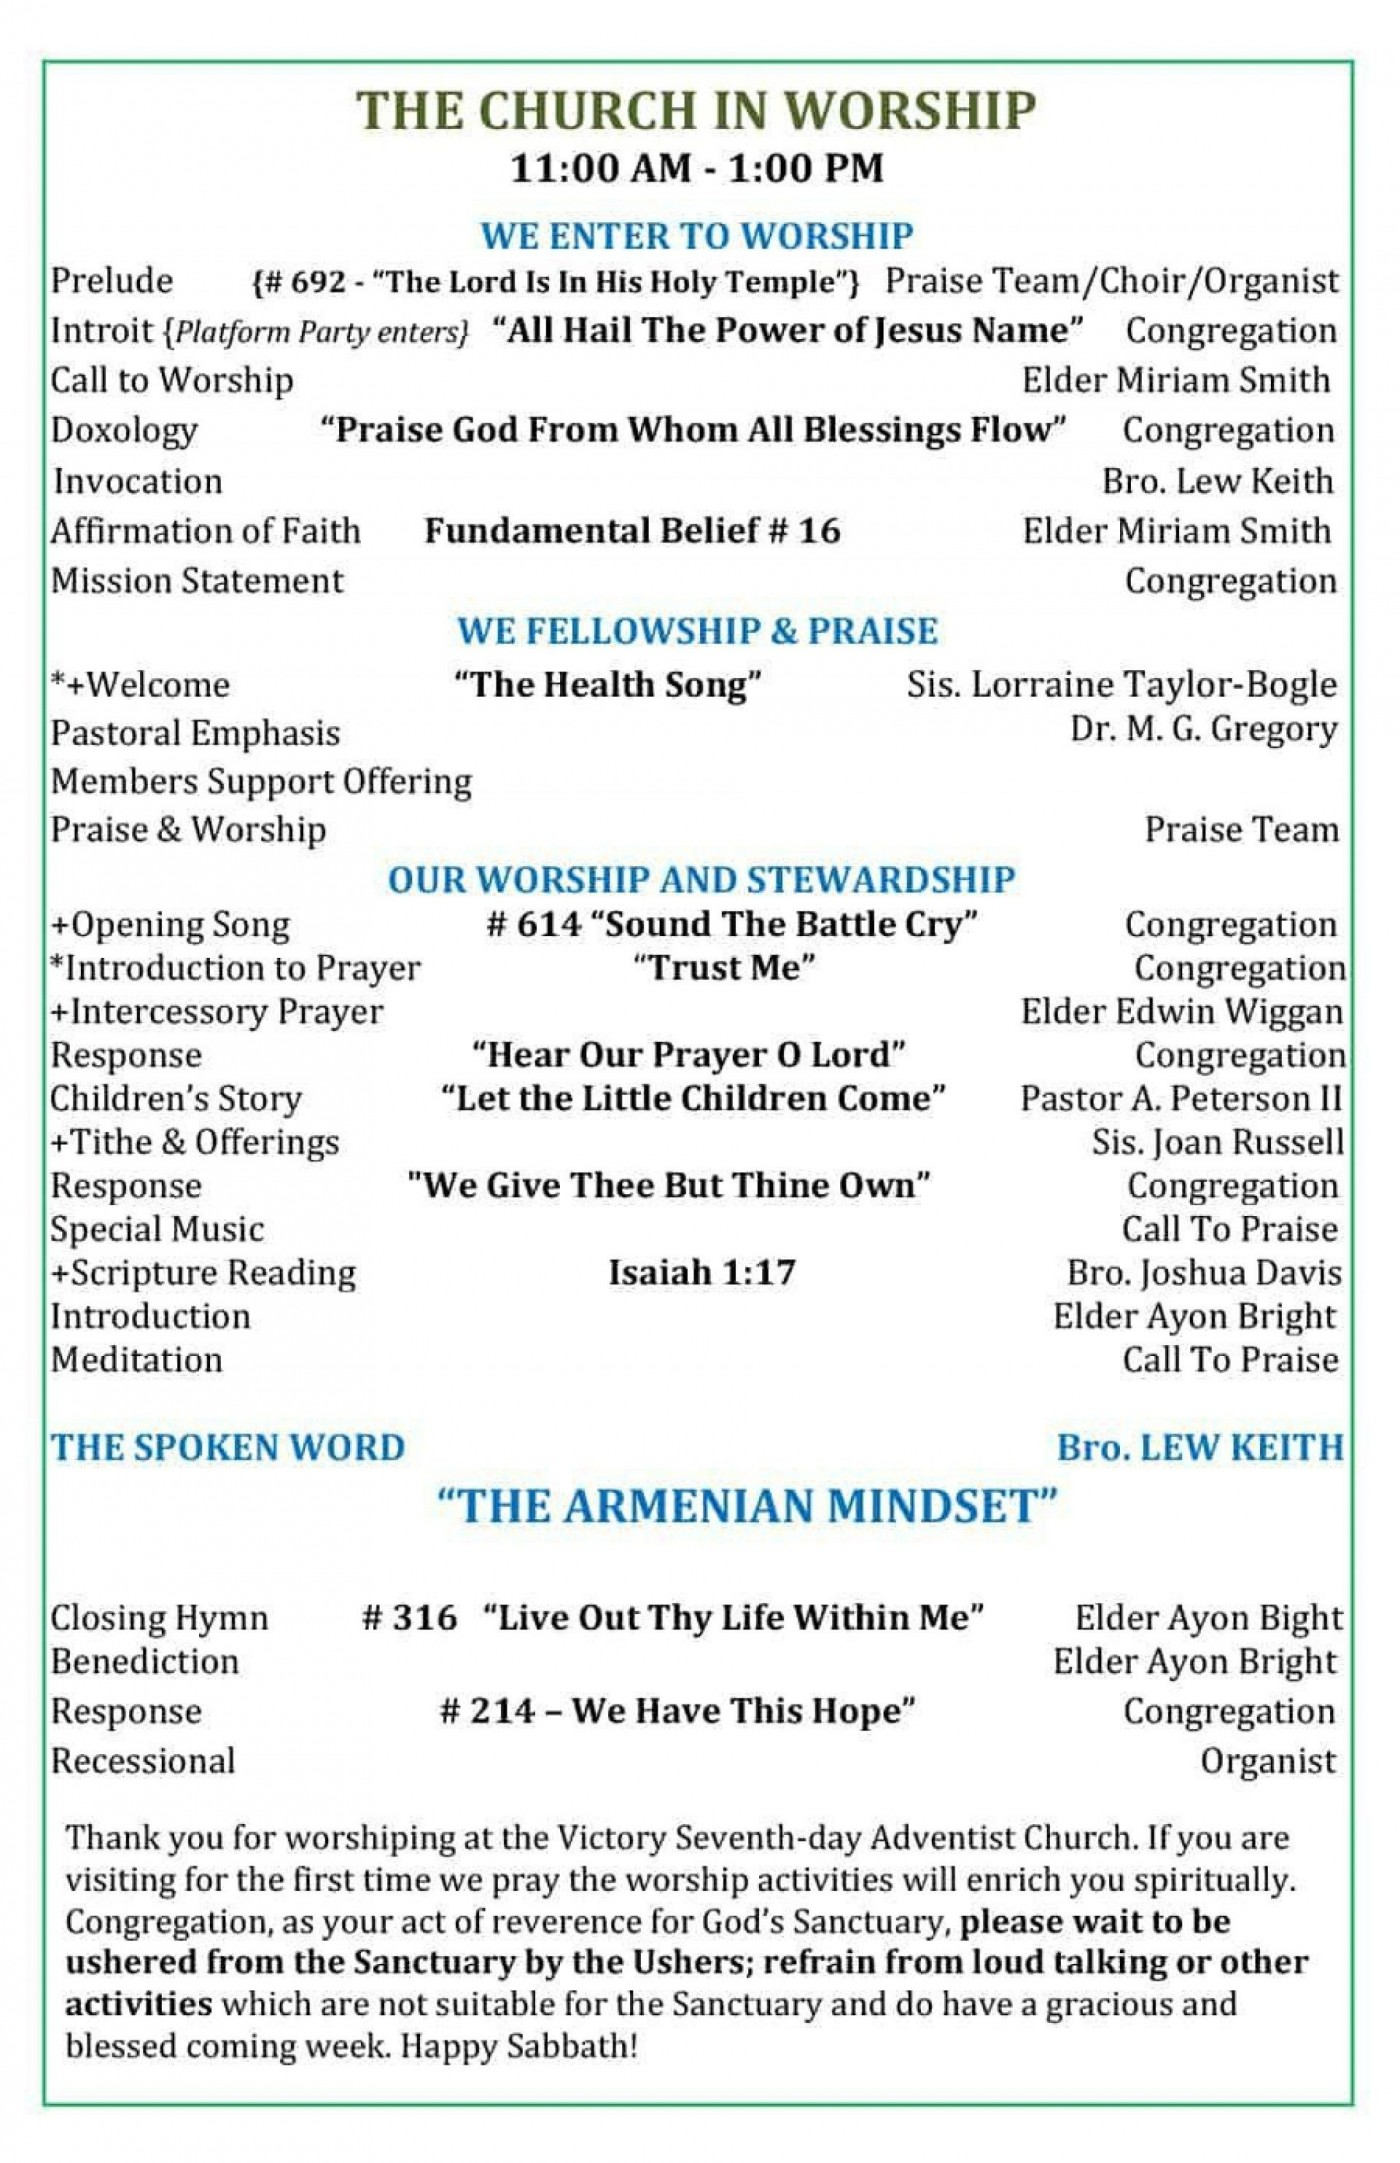 005 Fascinating Free Church Program Template Doc High Resolution 1400